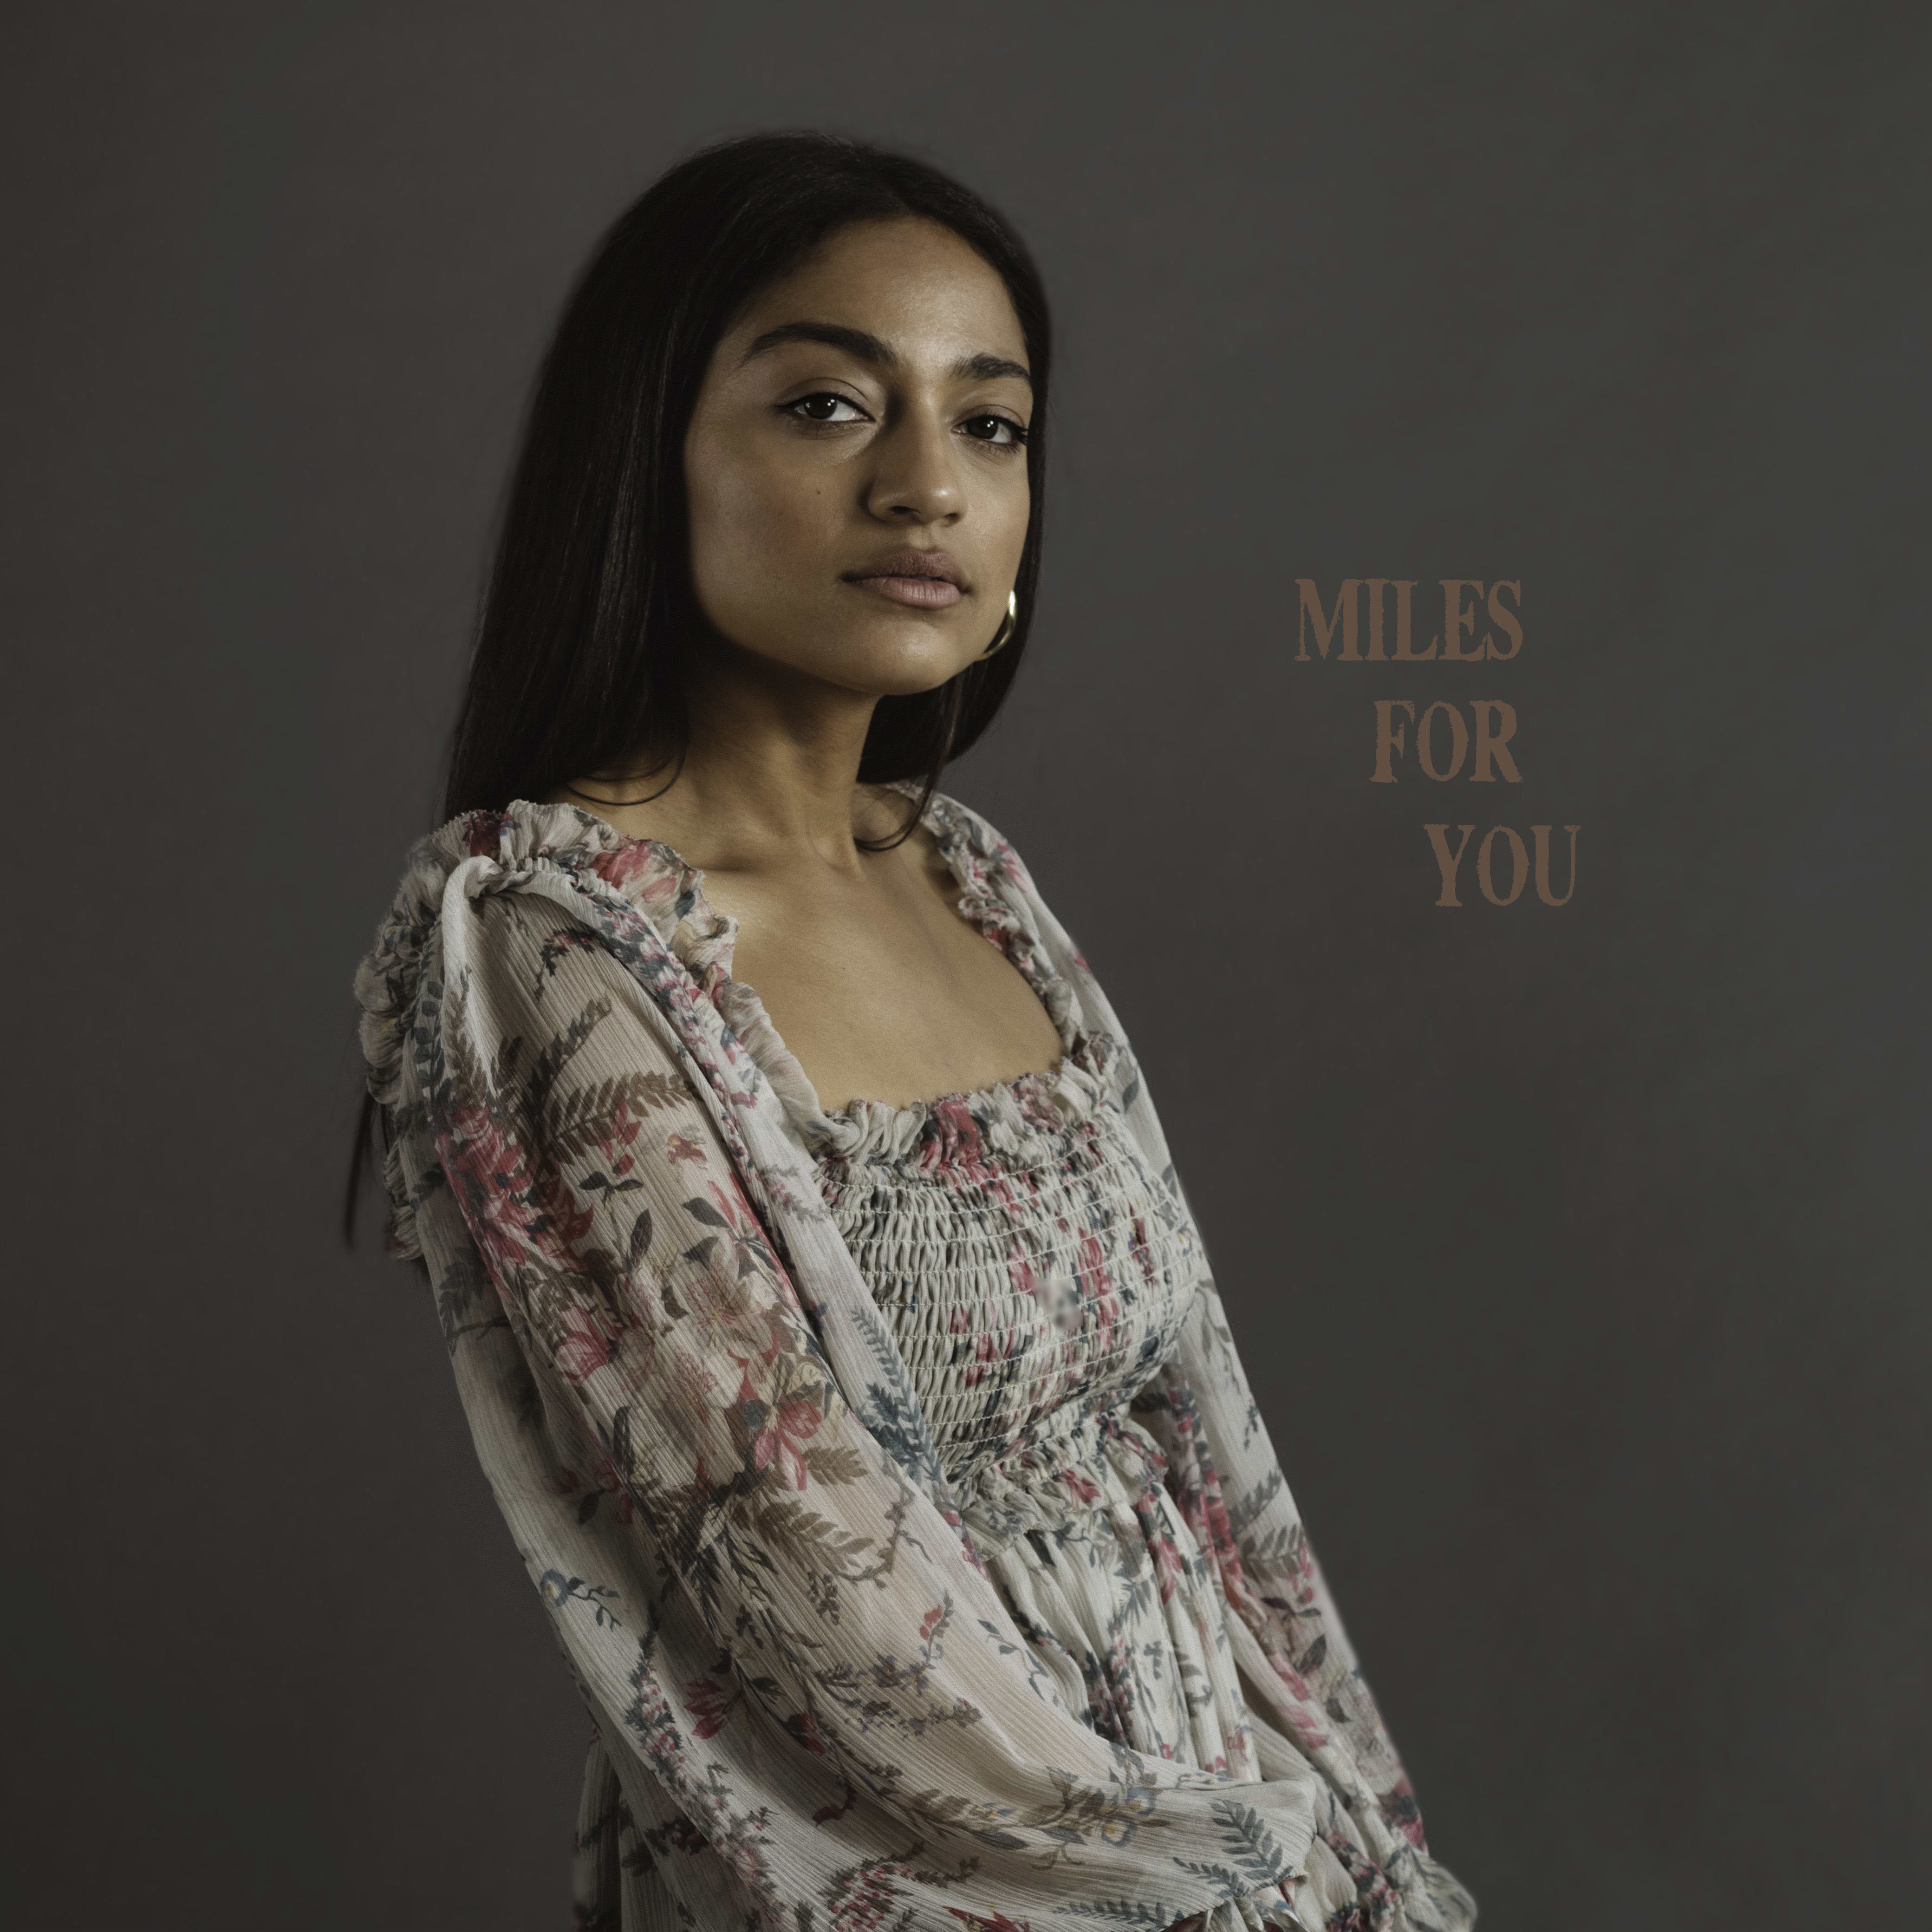 Miles For You